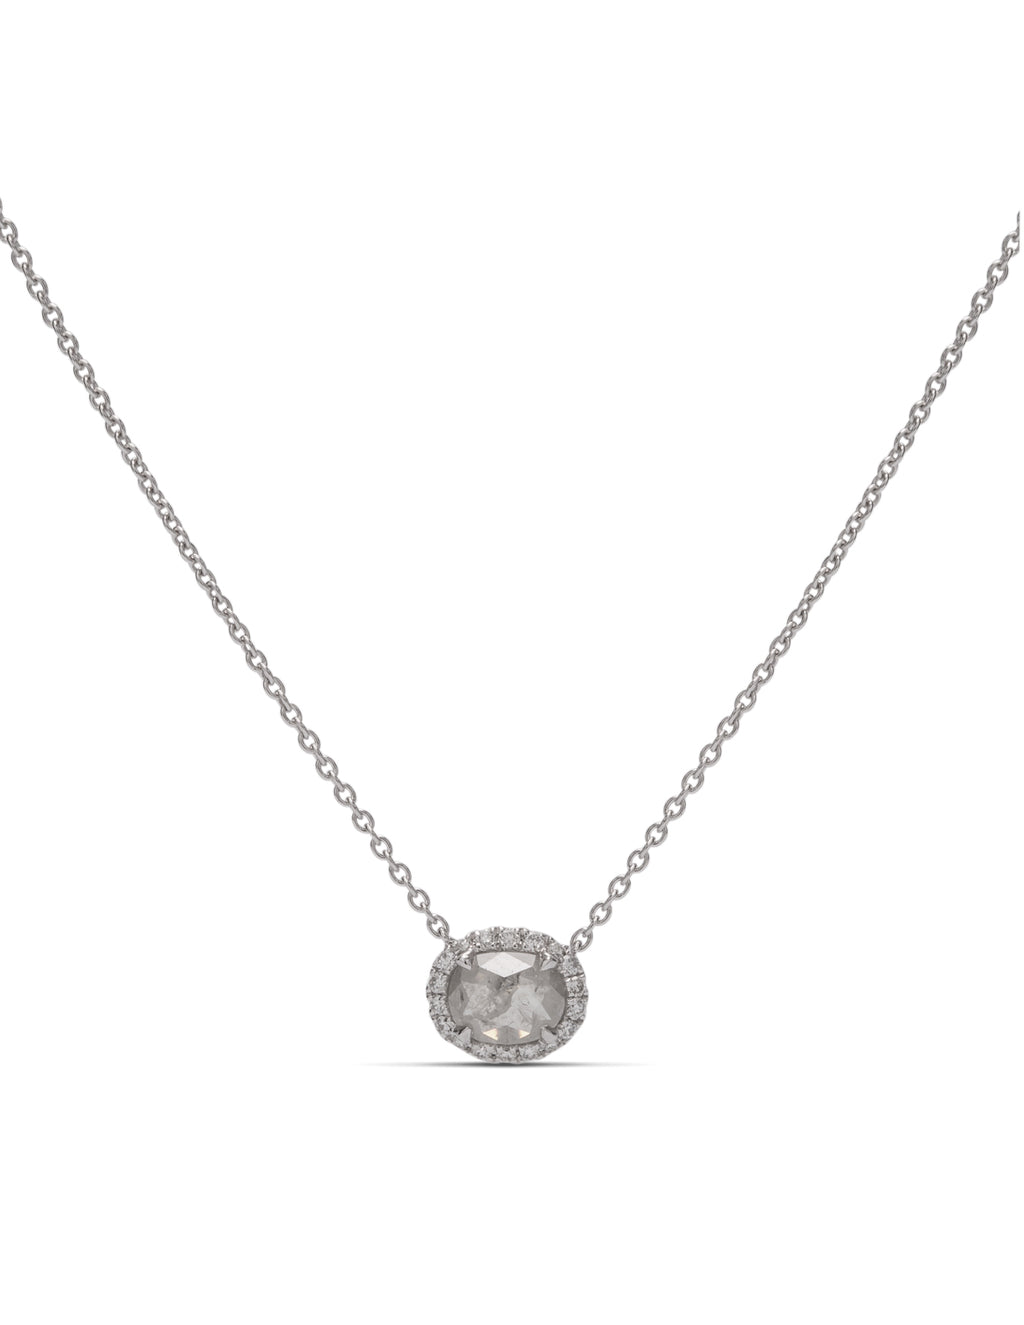 Rough Grey Diamond Necklace - Charles Koll Jewellers